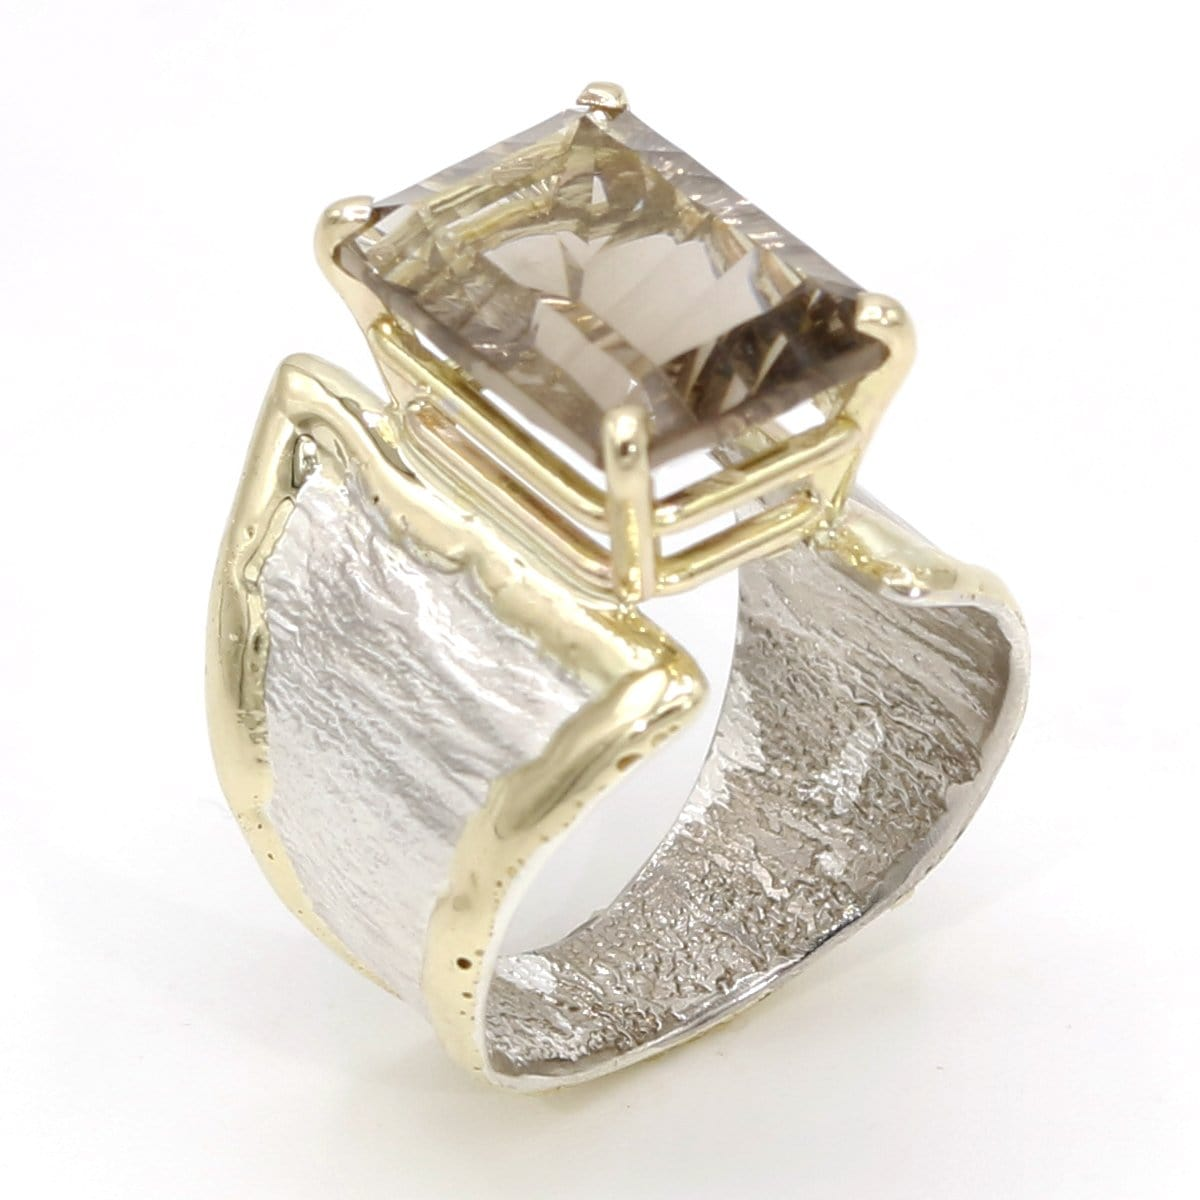 14K Gold & Crystalline Silver Smoky Quartz Ring - 37404